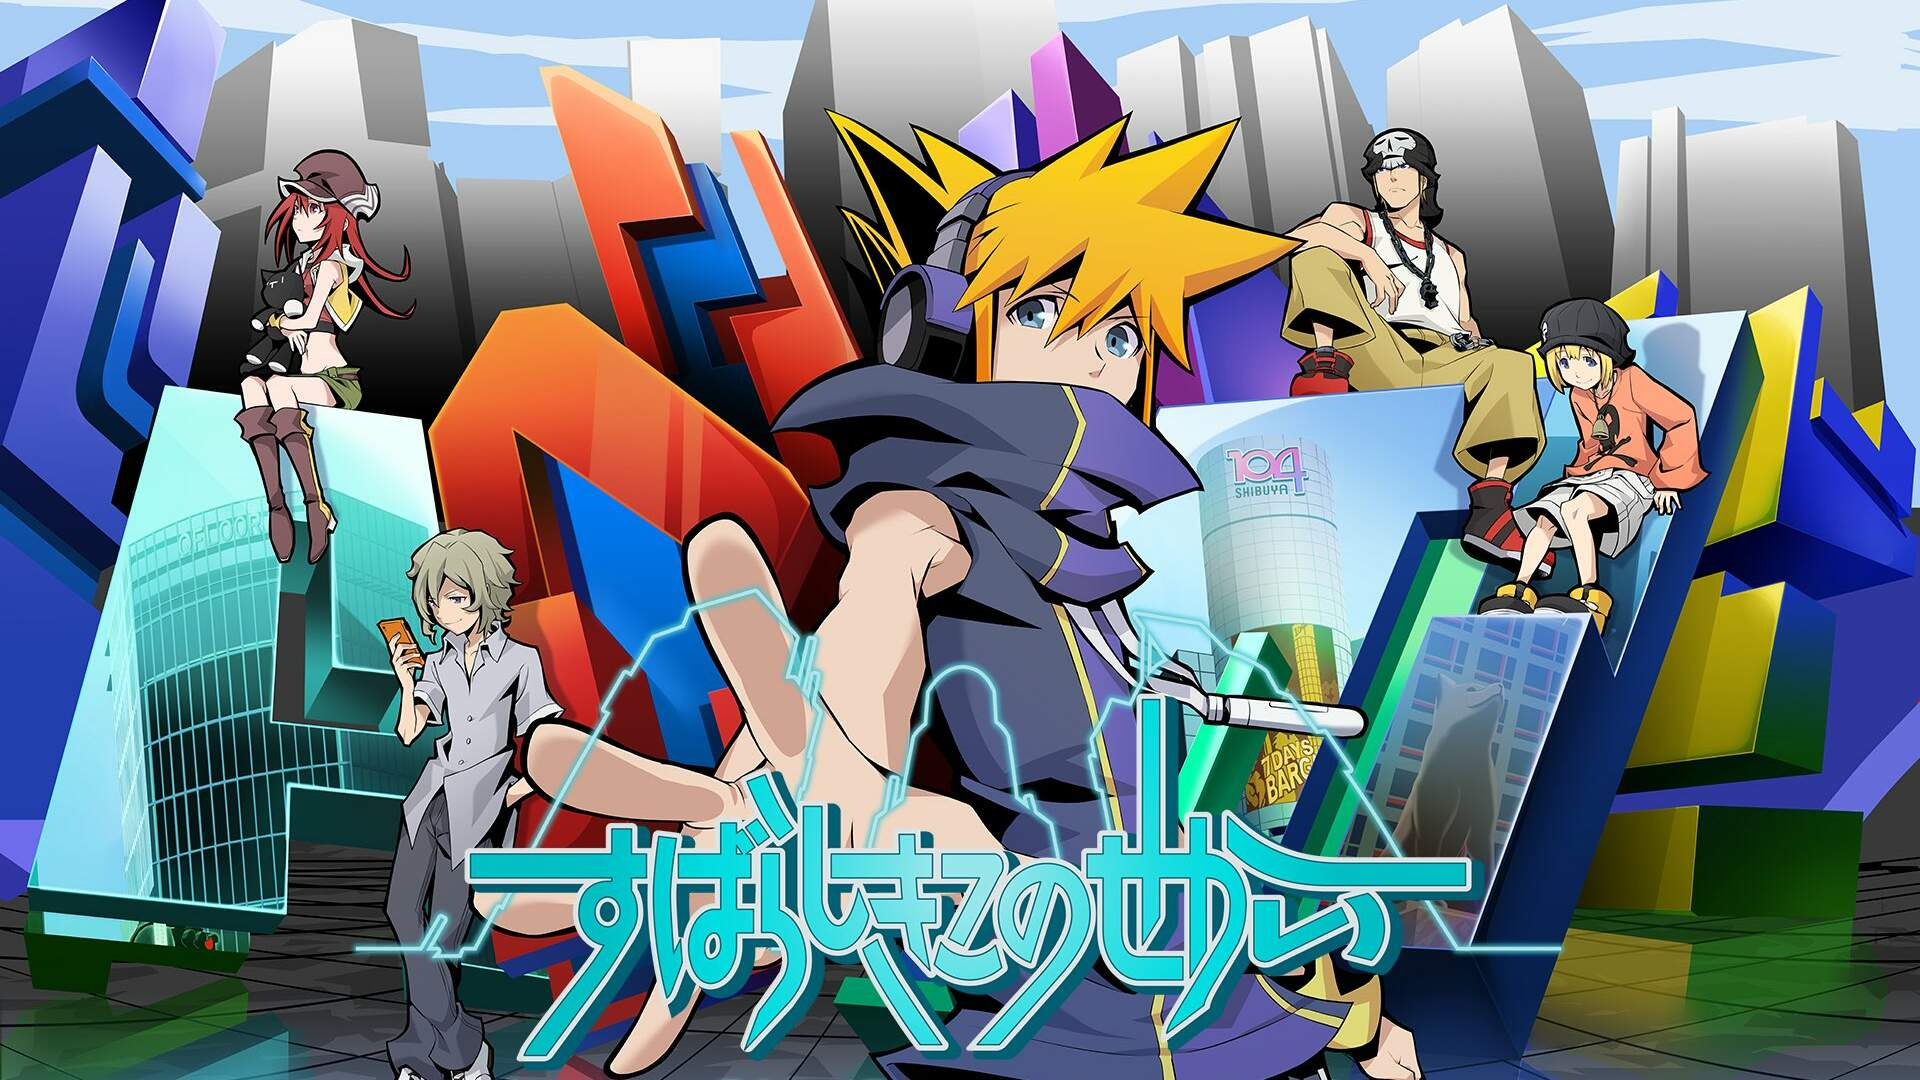 The World Ends With You Anime Launches This Month in Japan